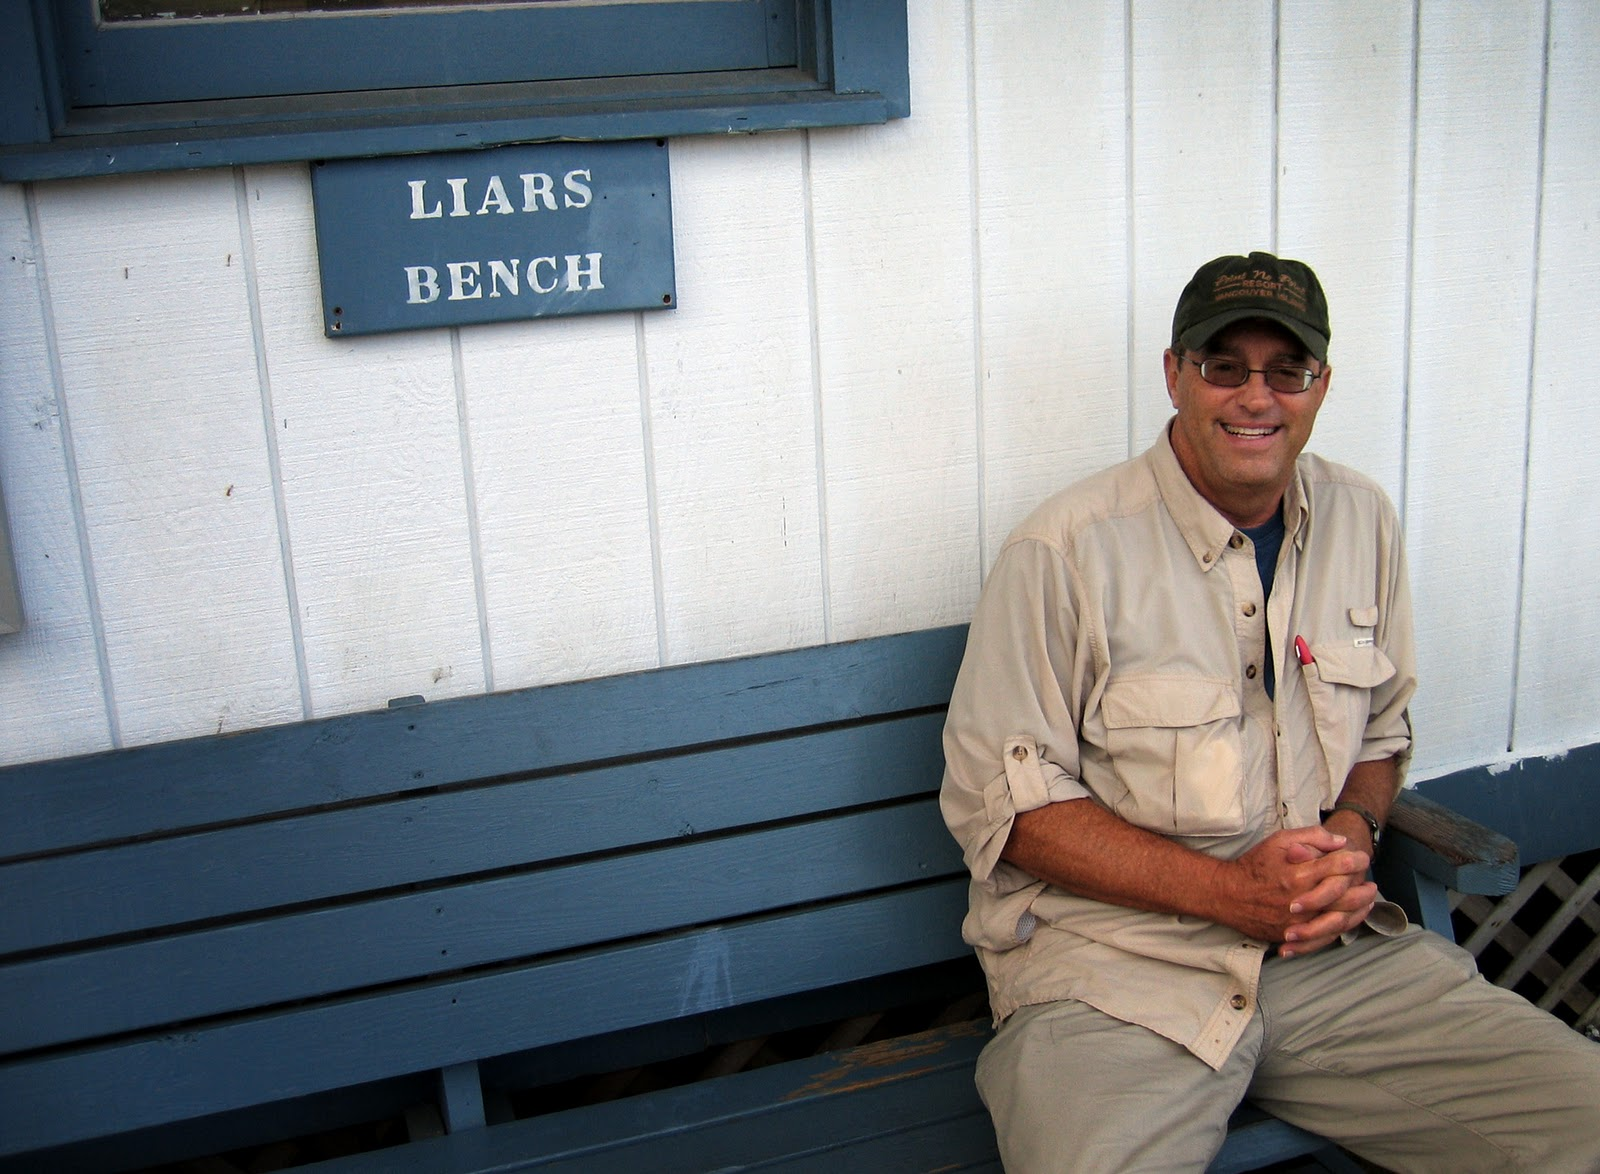 The Log Of Spartina The Liars Bench